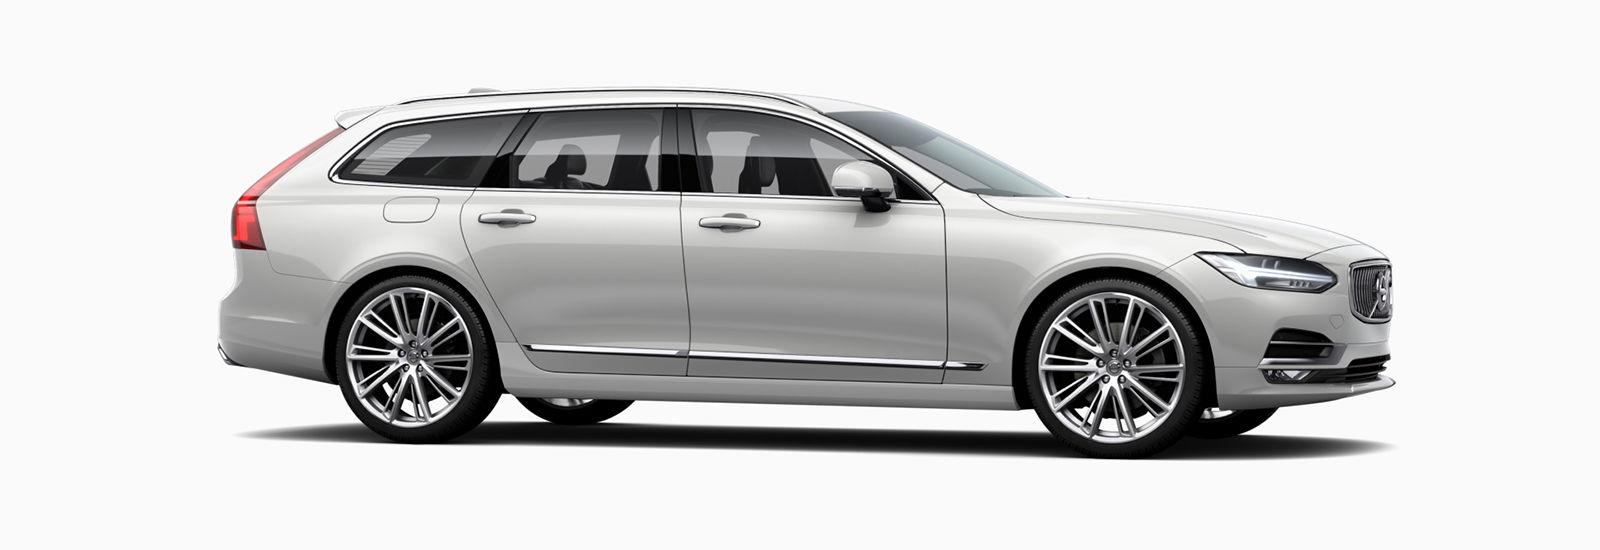 used volvos for sale near me 2018 volvo reviews